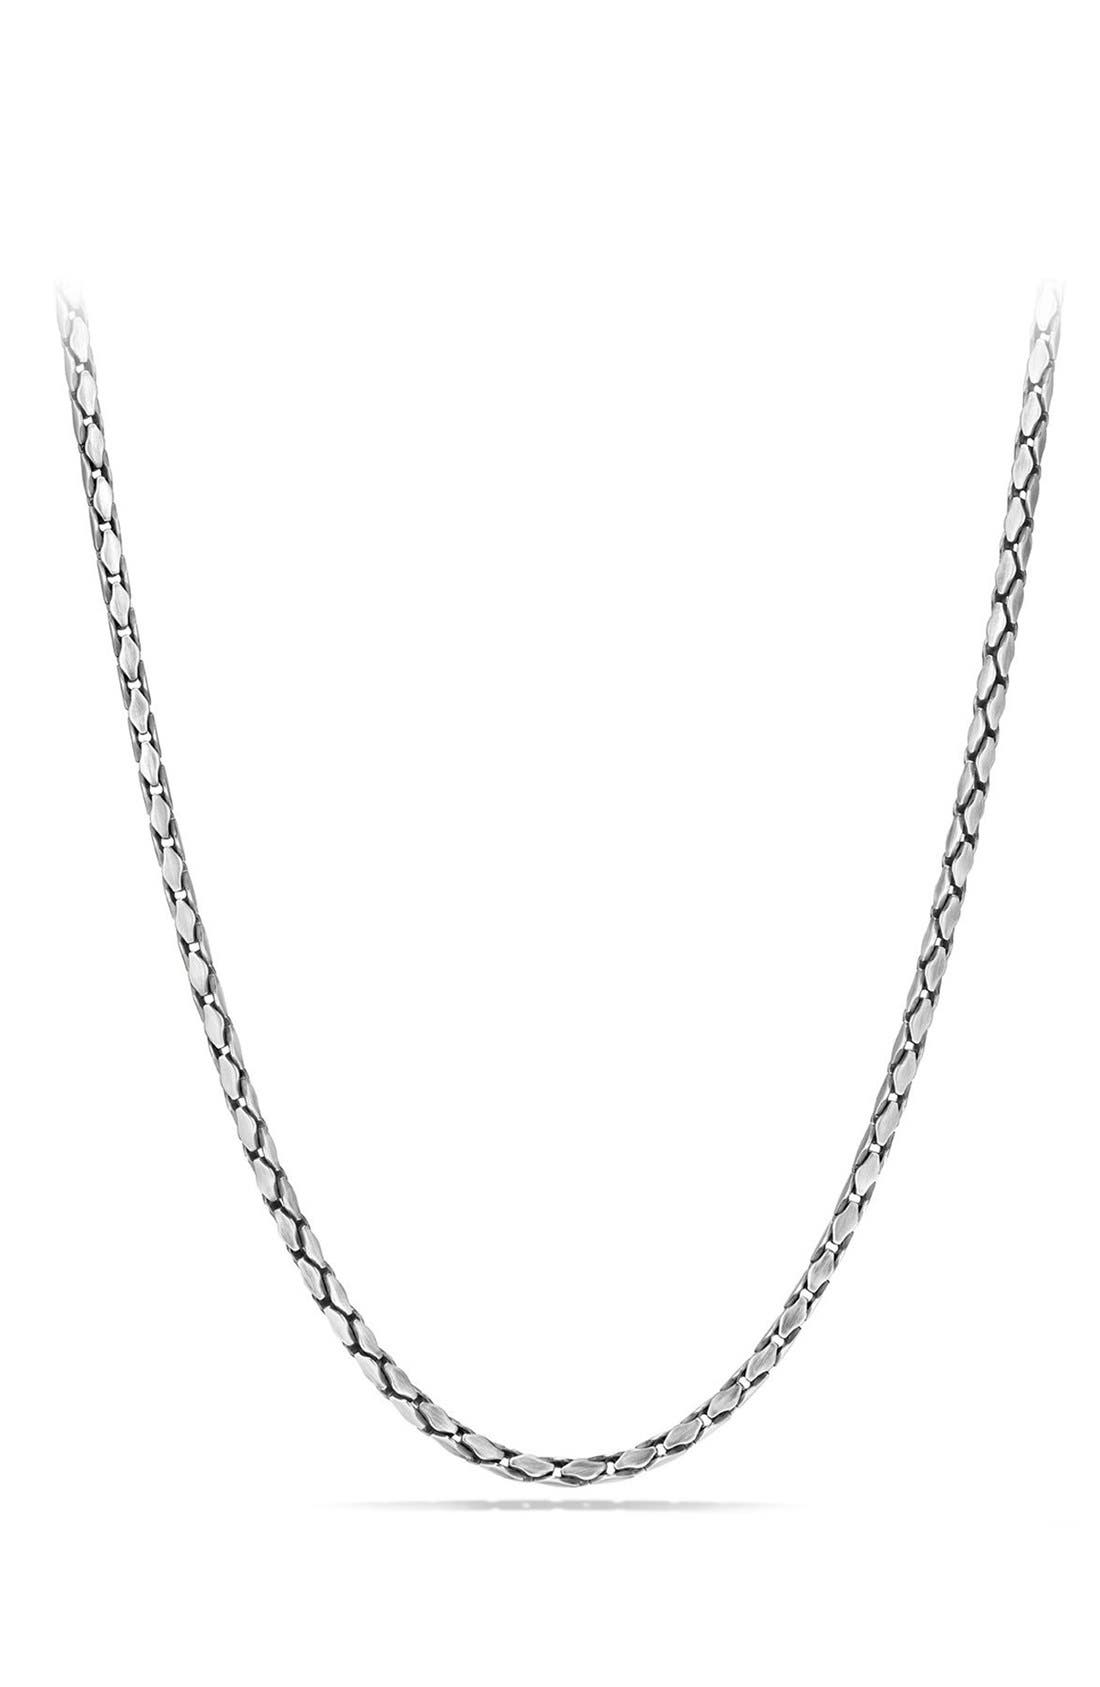 'Chain' Small Fluted Chain Necklace, 3.8mm,                             Main thumbnail 1, color,                             SILVER